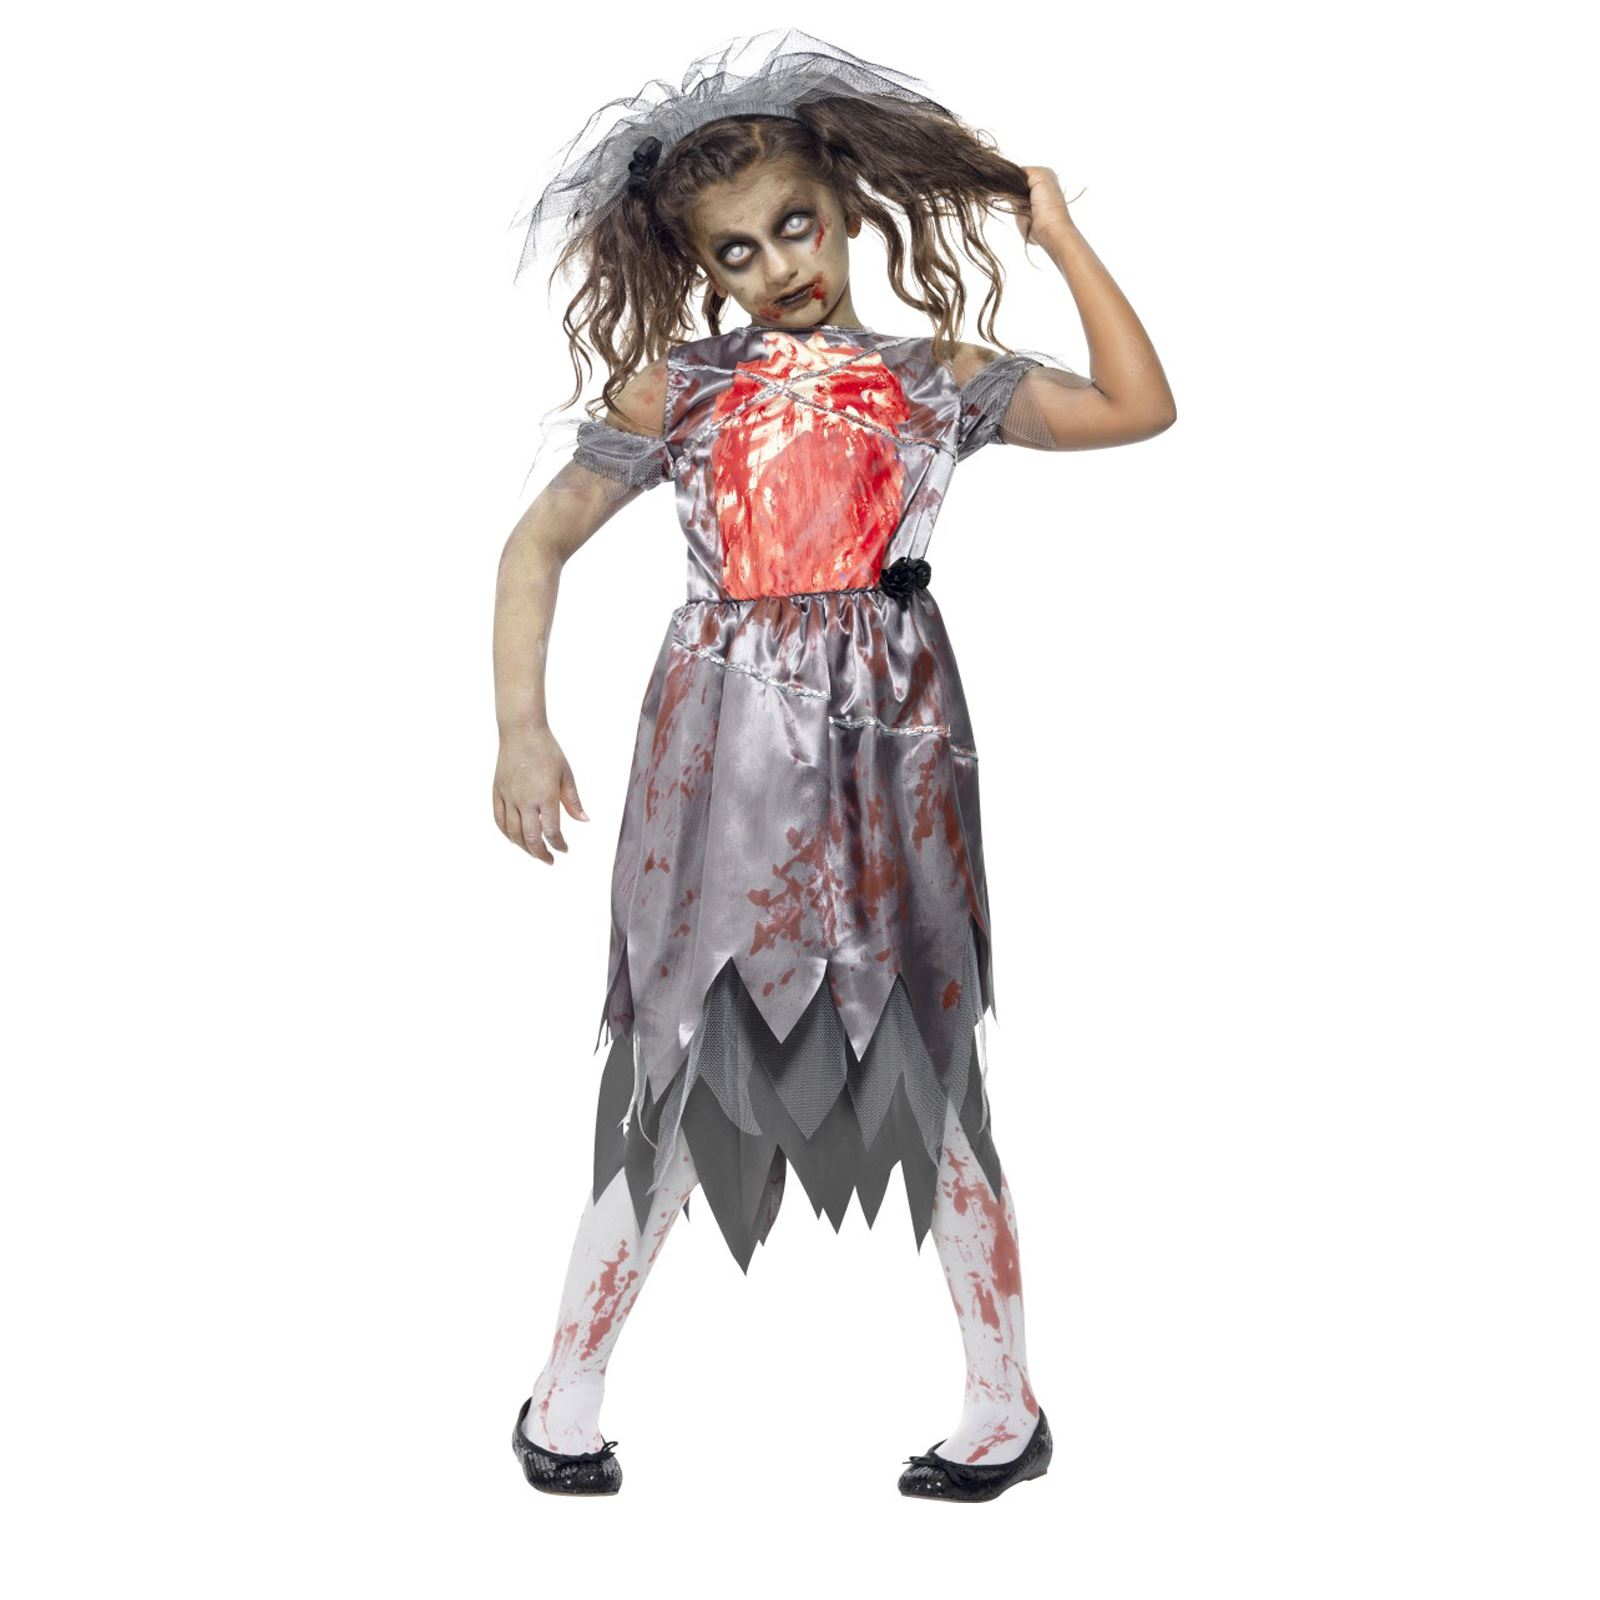 Girls Bride To Be Zombie Dress Costume With Veil